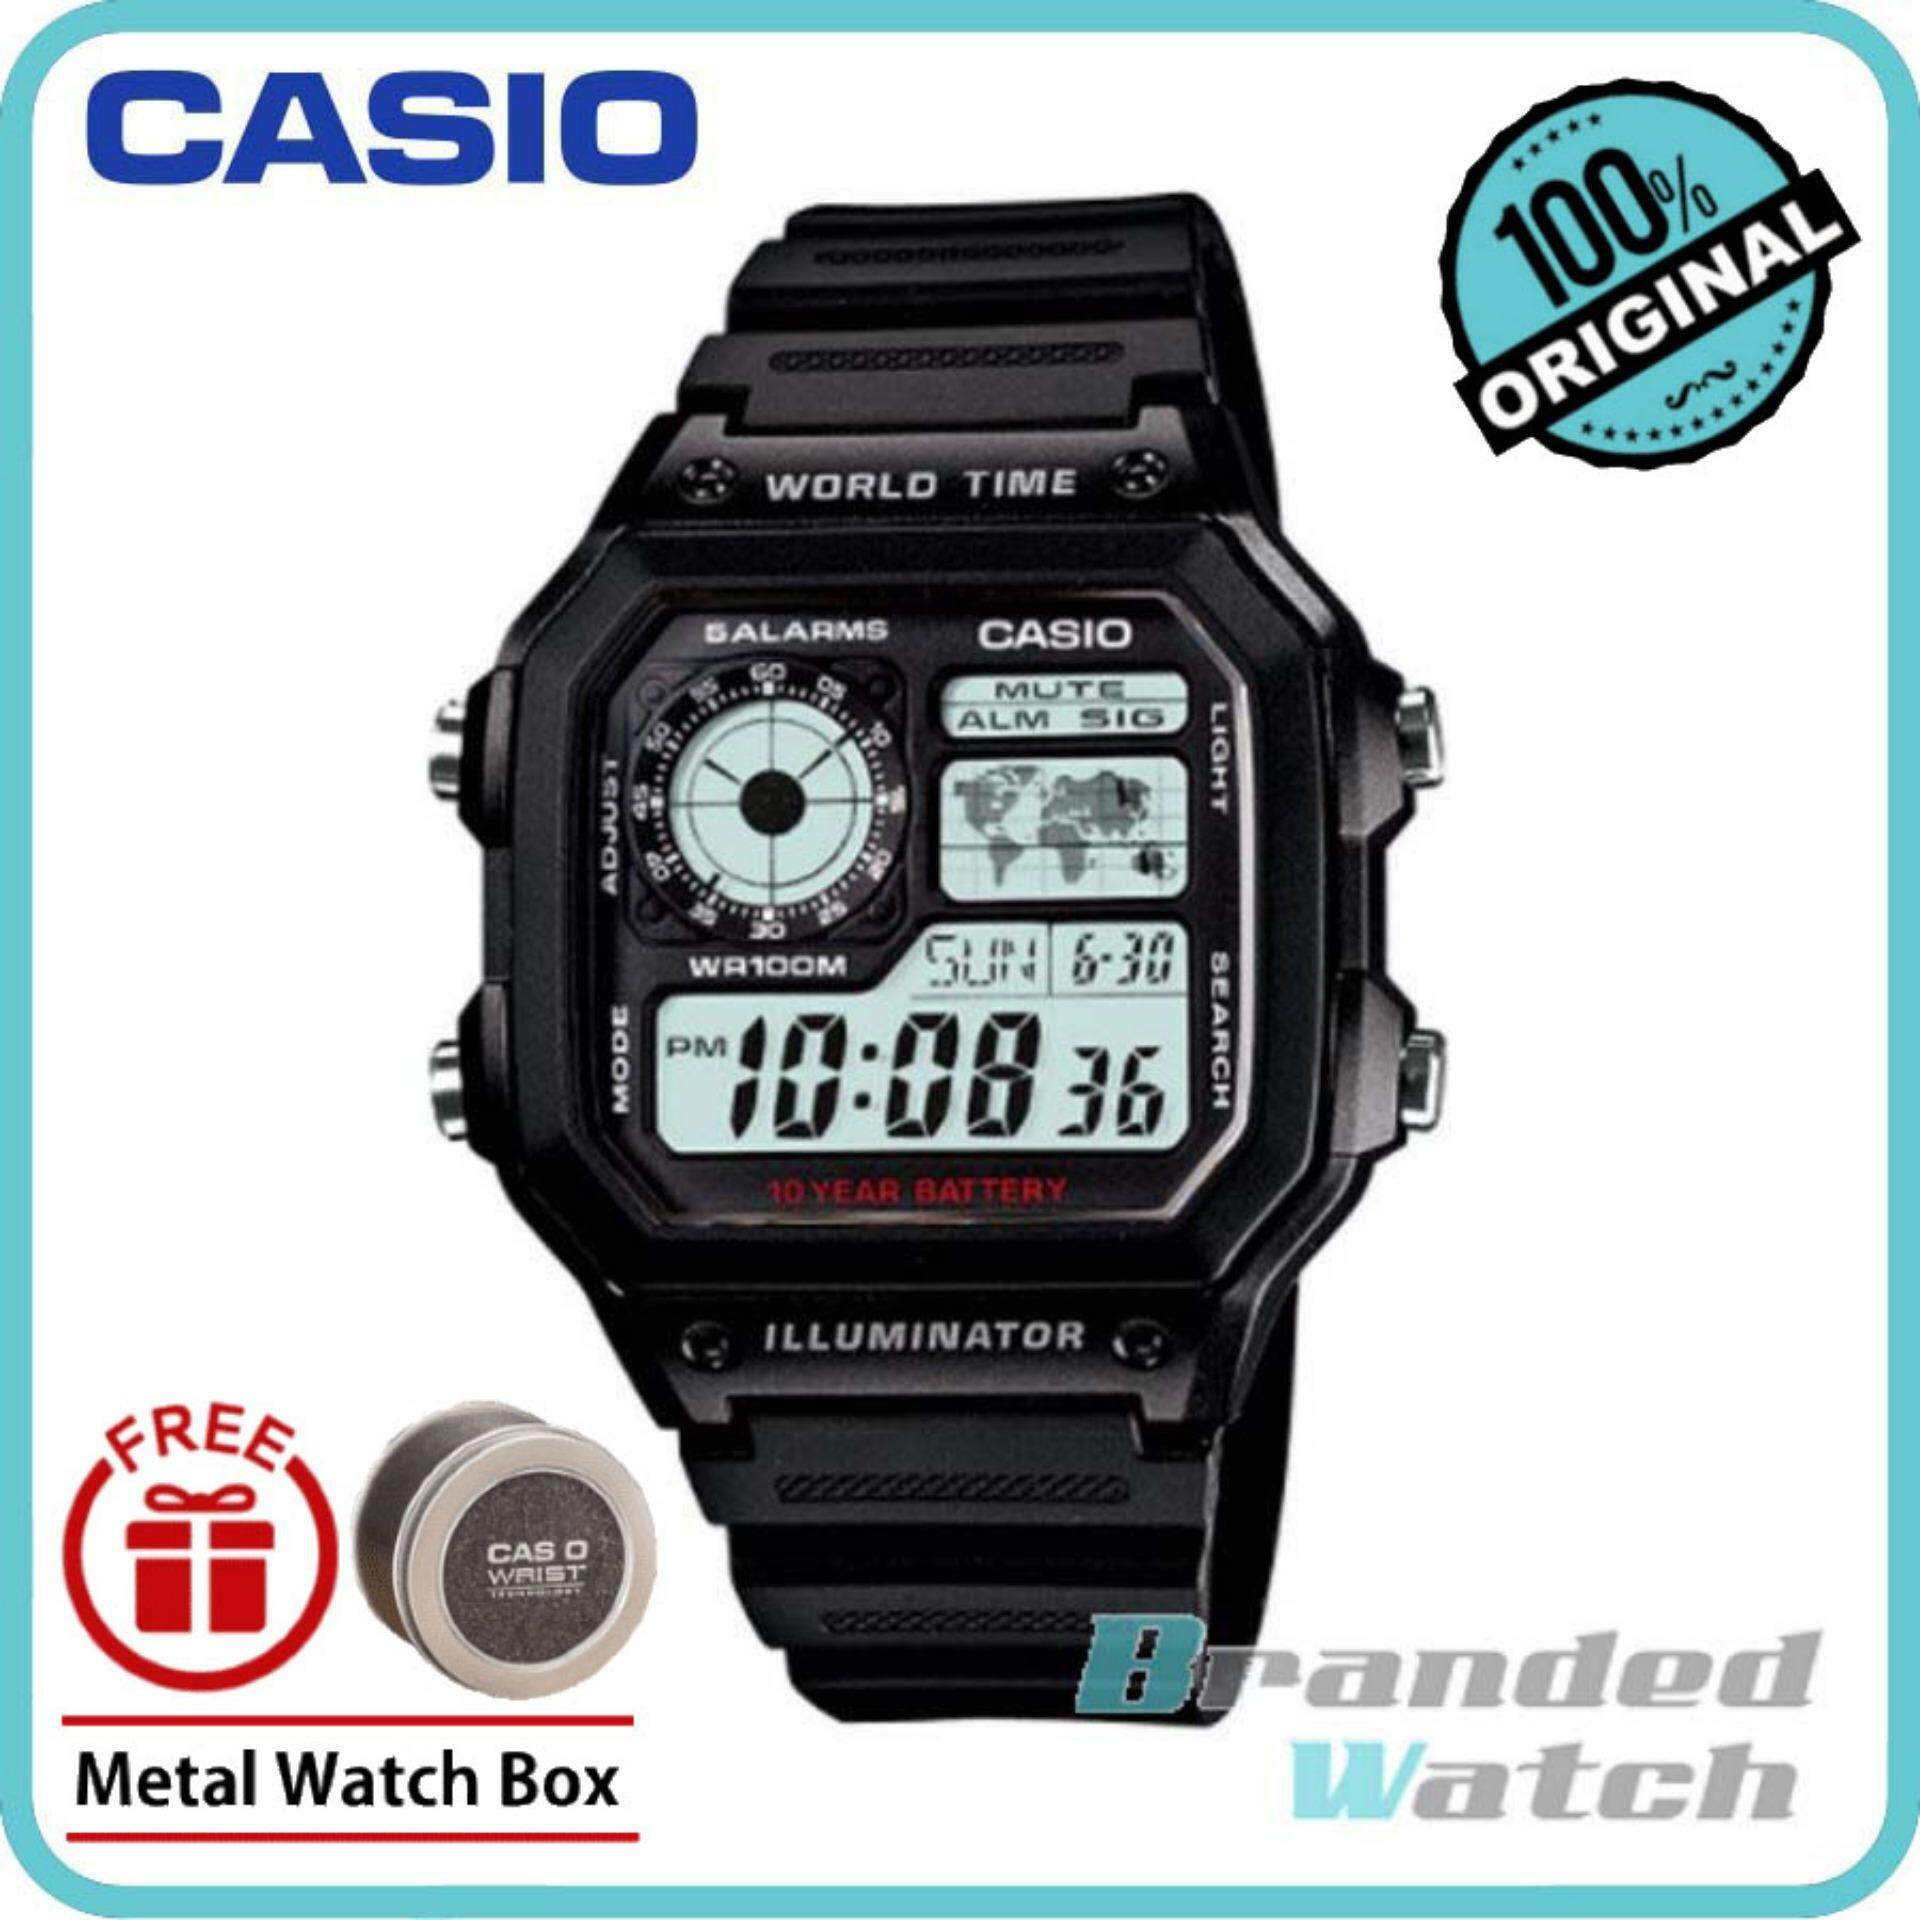 0099a7d8772 Casio Products for the Best Price in Malaysia